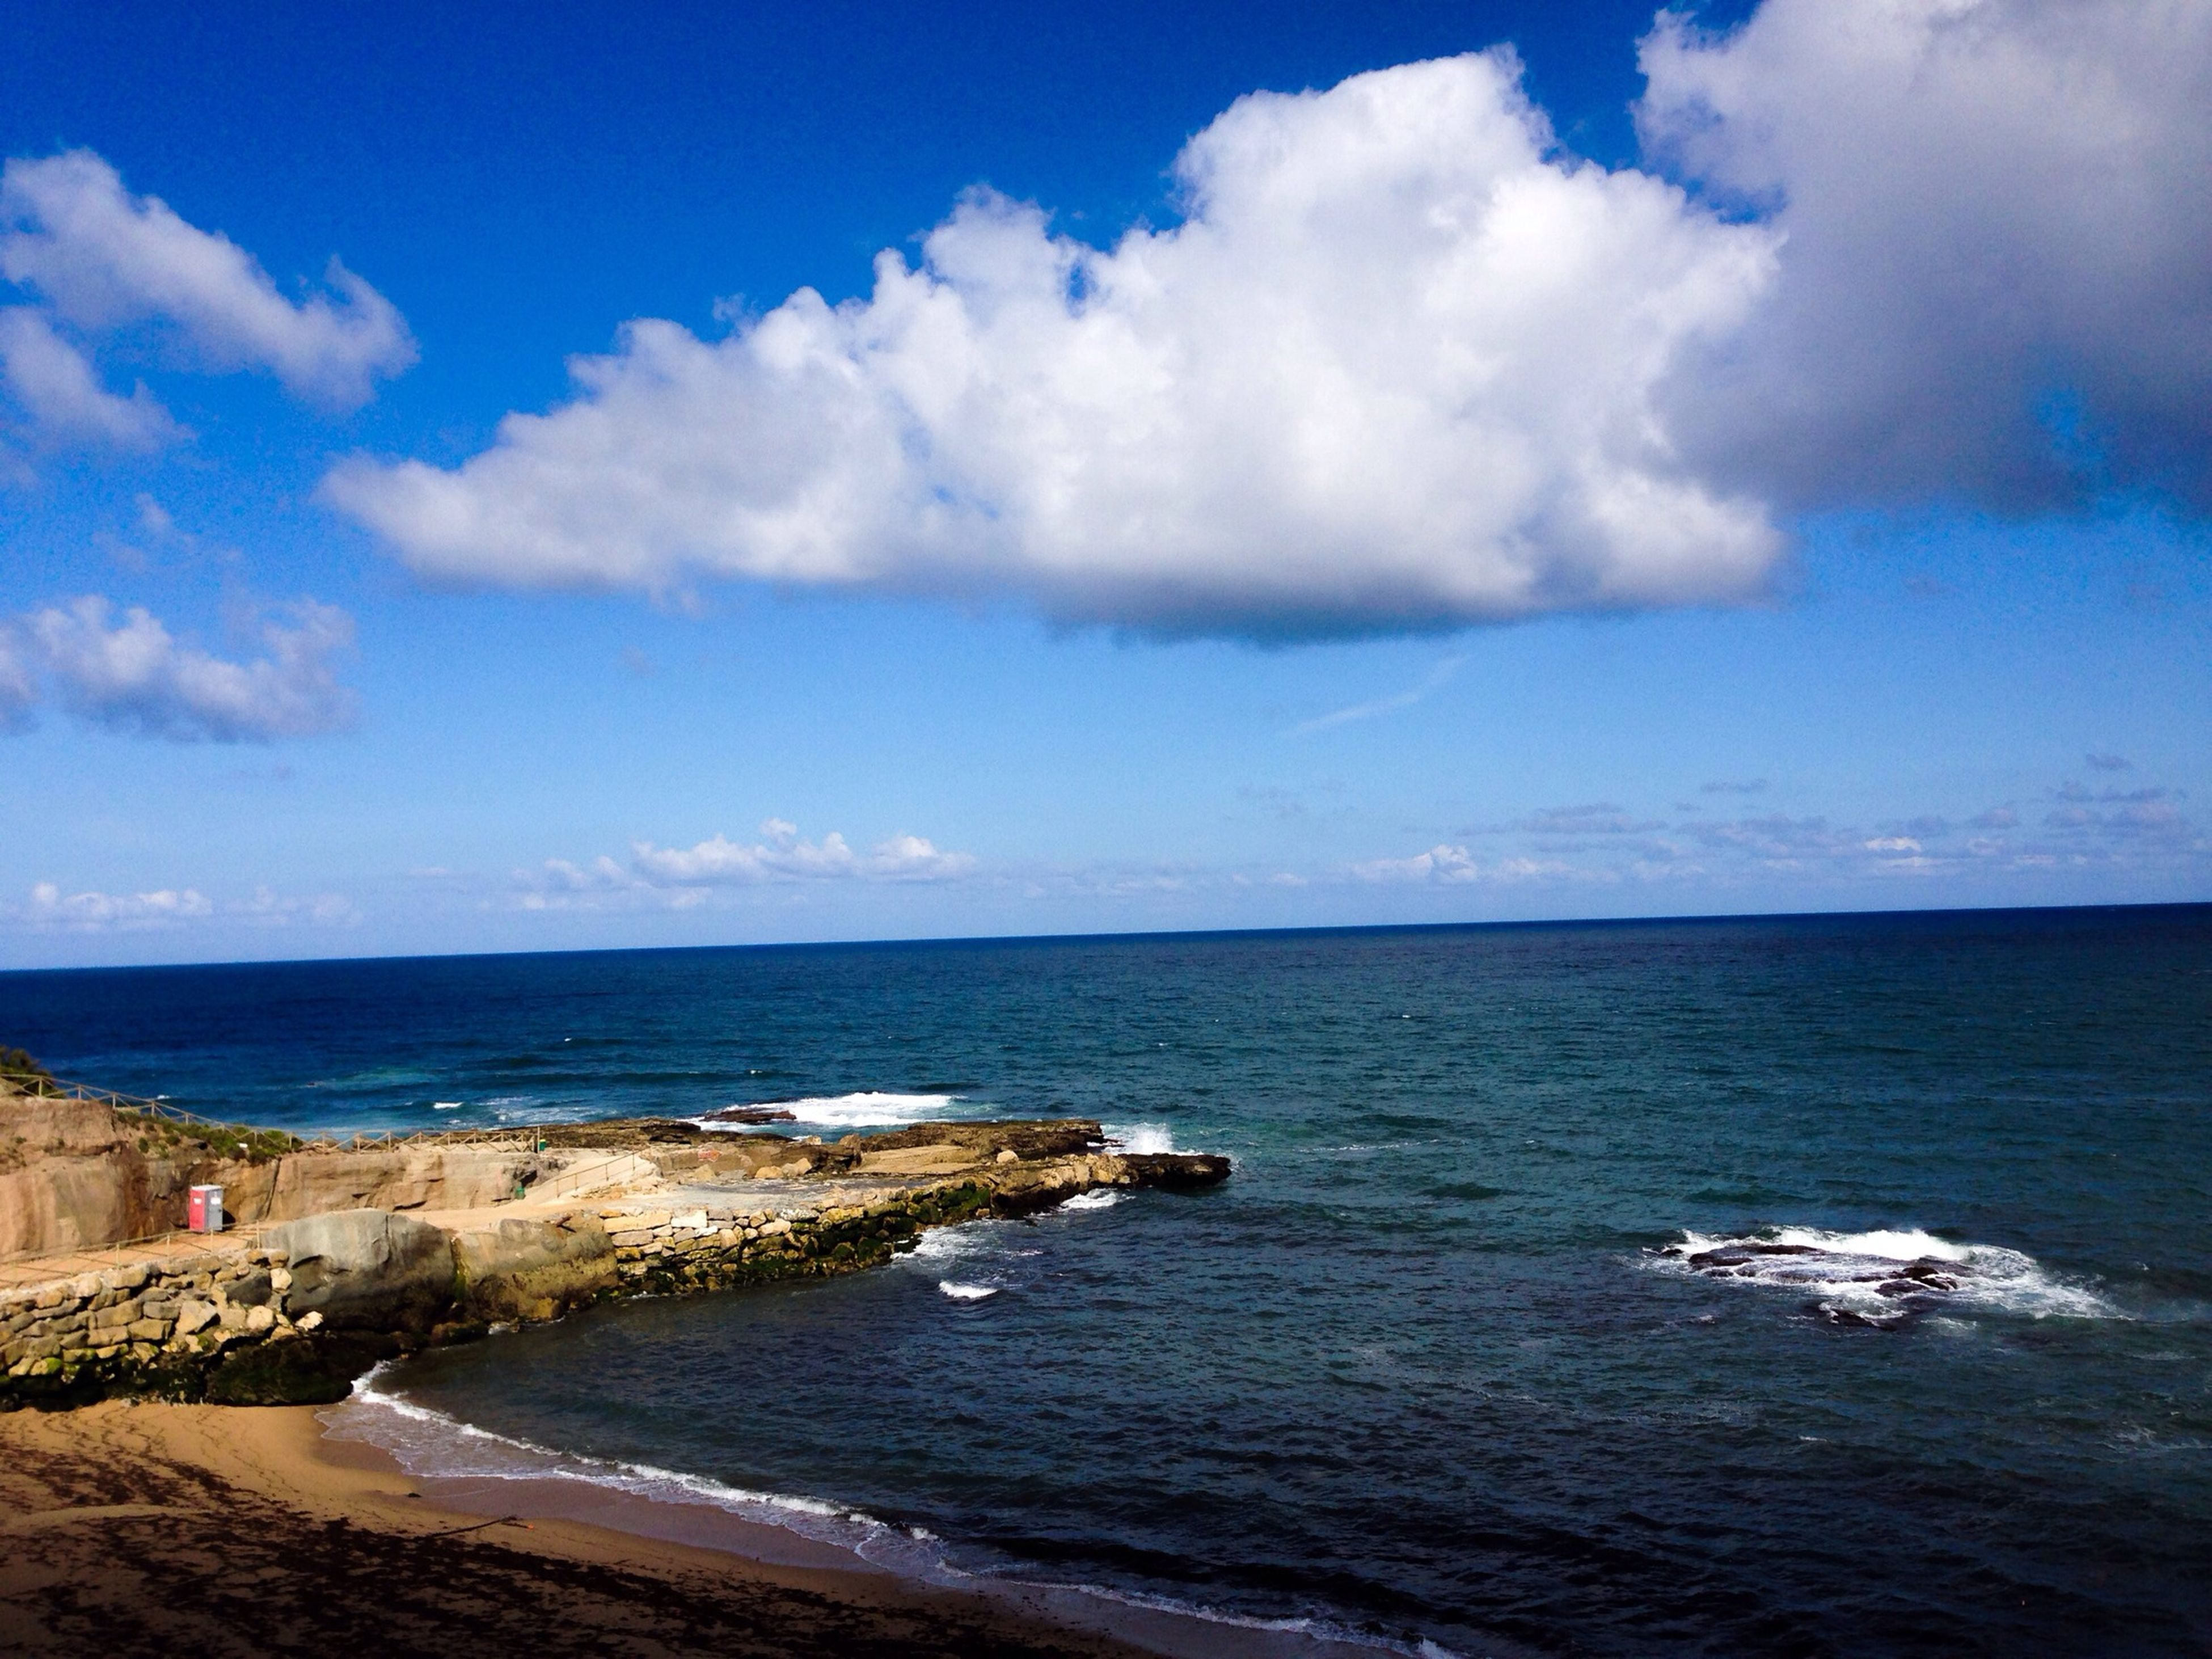 sea, horizon over water, water, sky, tranquil scene, scenics, beach, tranquility, beauty in nature, cloud - sky, shore, nature, cloud, cloudy, blue, idyllic, seascape, coastline, calm, day